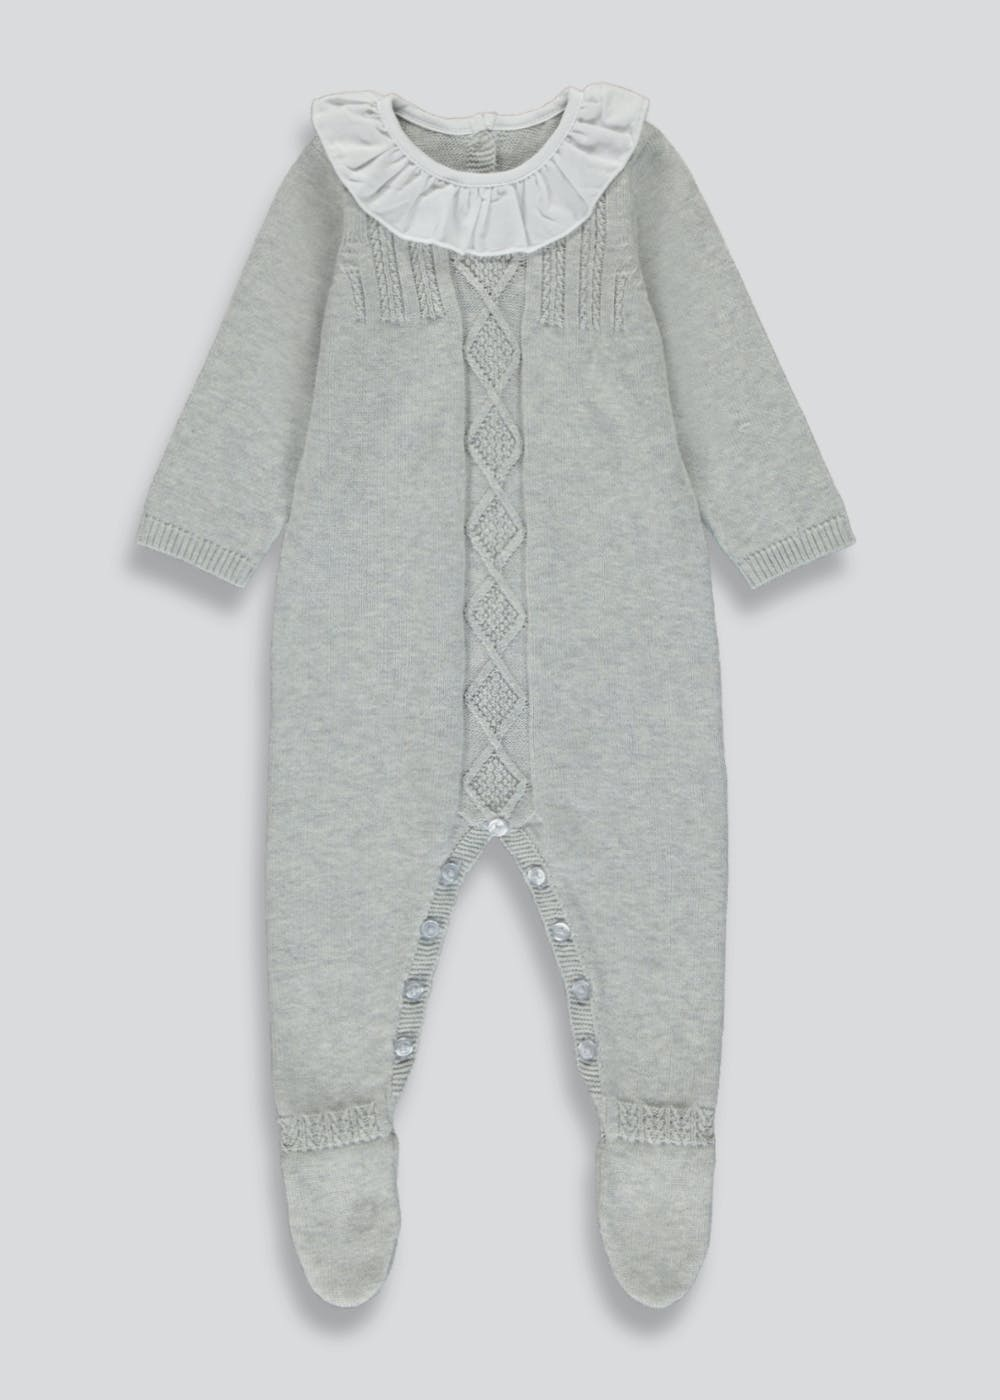 Grey knit frill neck baby romper